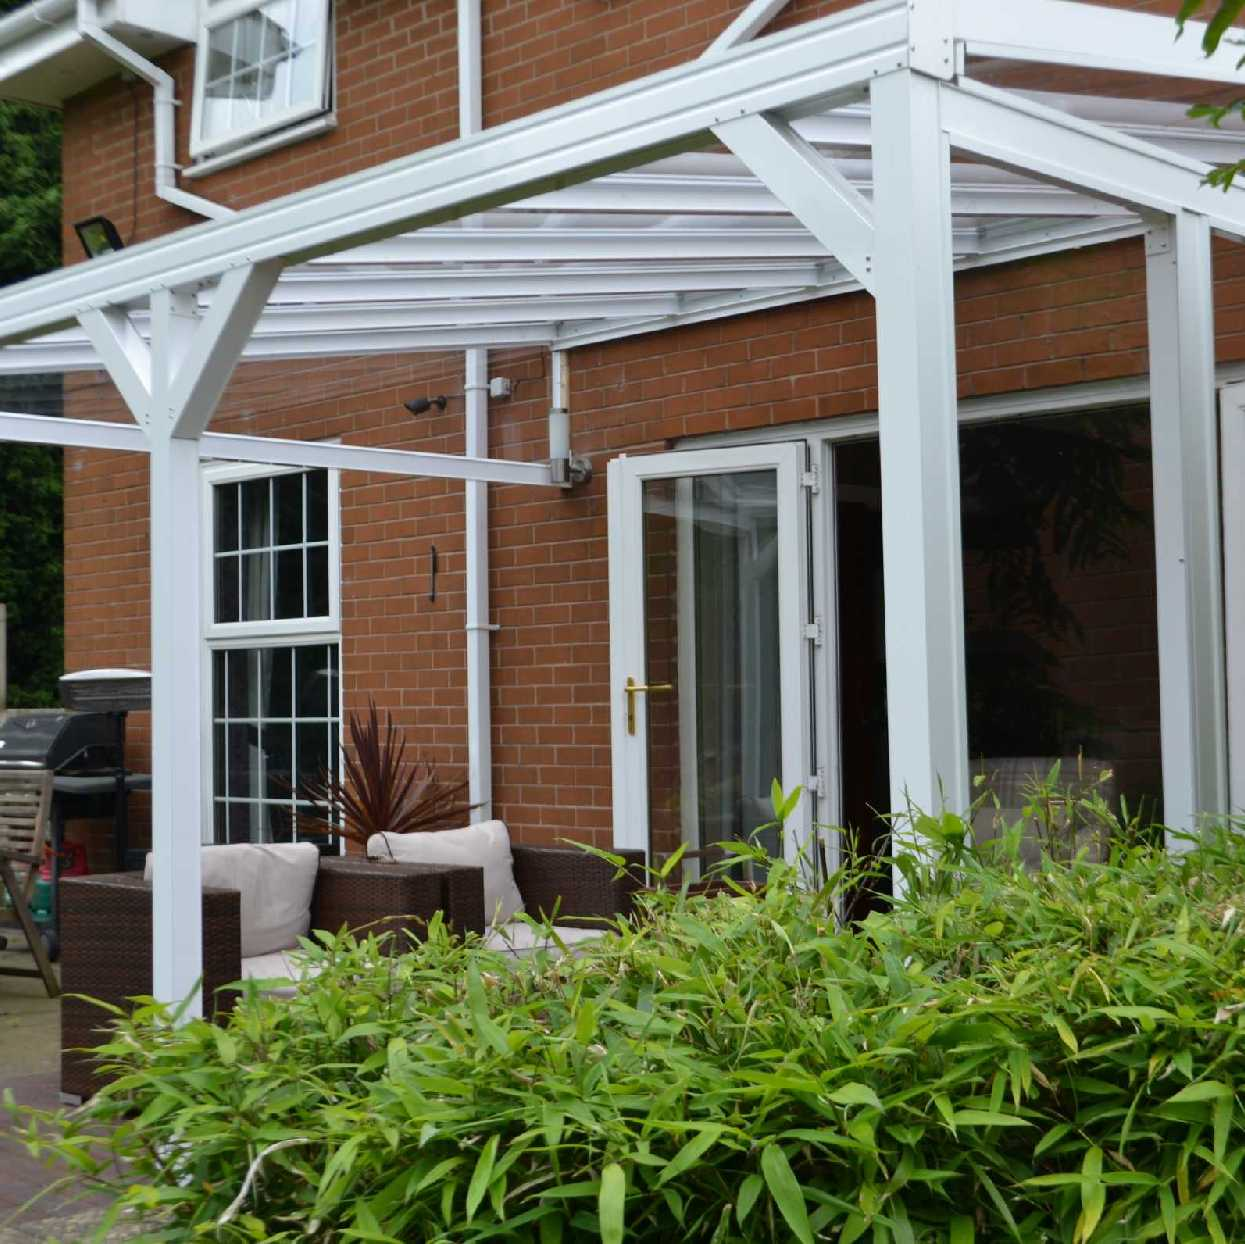 Omega Smart Lean-To Canopy with 6mm Glass Clear Plate Polycarbonate Glazing - 4.2m (W) x 3.0m (P), (3) Supporting Posts from Omega Build